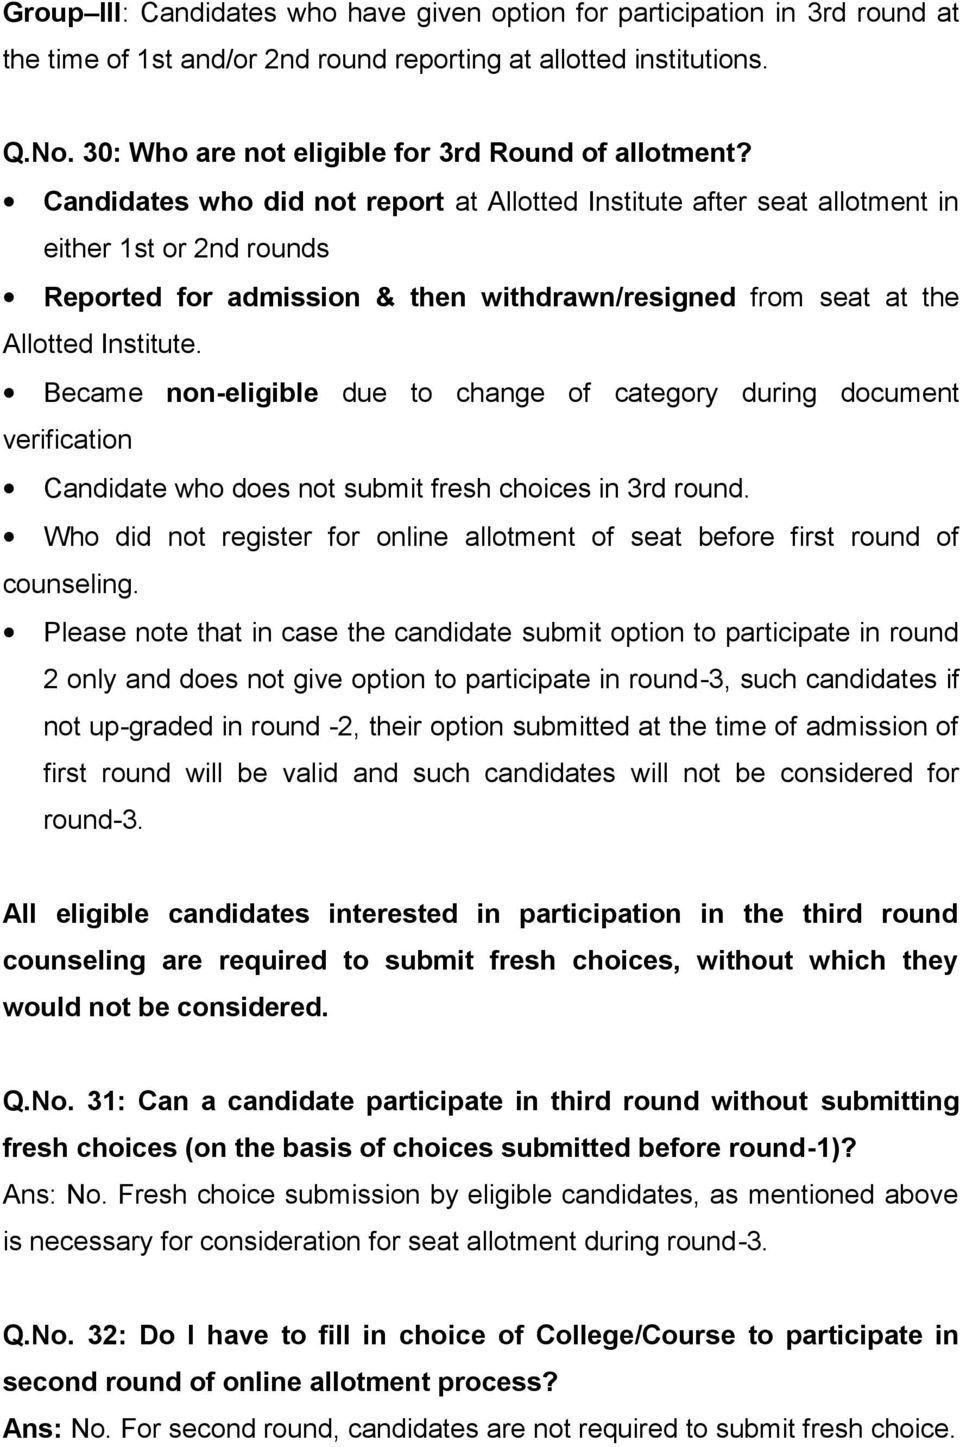 Candidates who did not report at Allotted Institute after seat allotment in either 1st or 2nd rounds Reported for admission & then withdrawn/resigned from seat at the Allotted Institute.